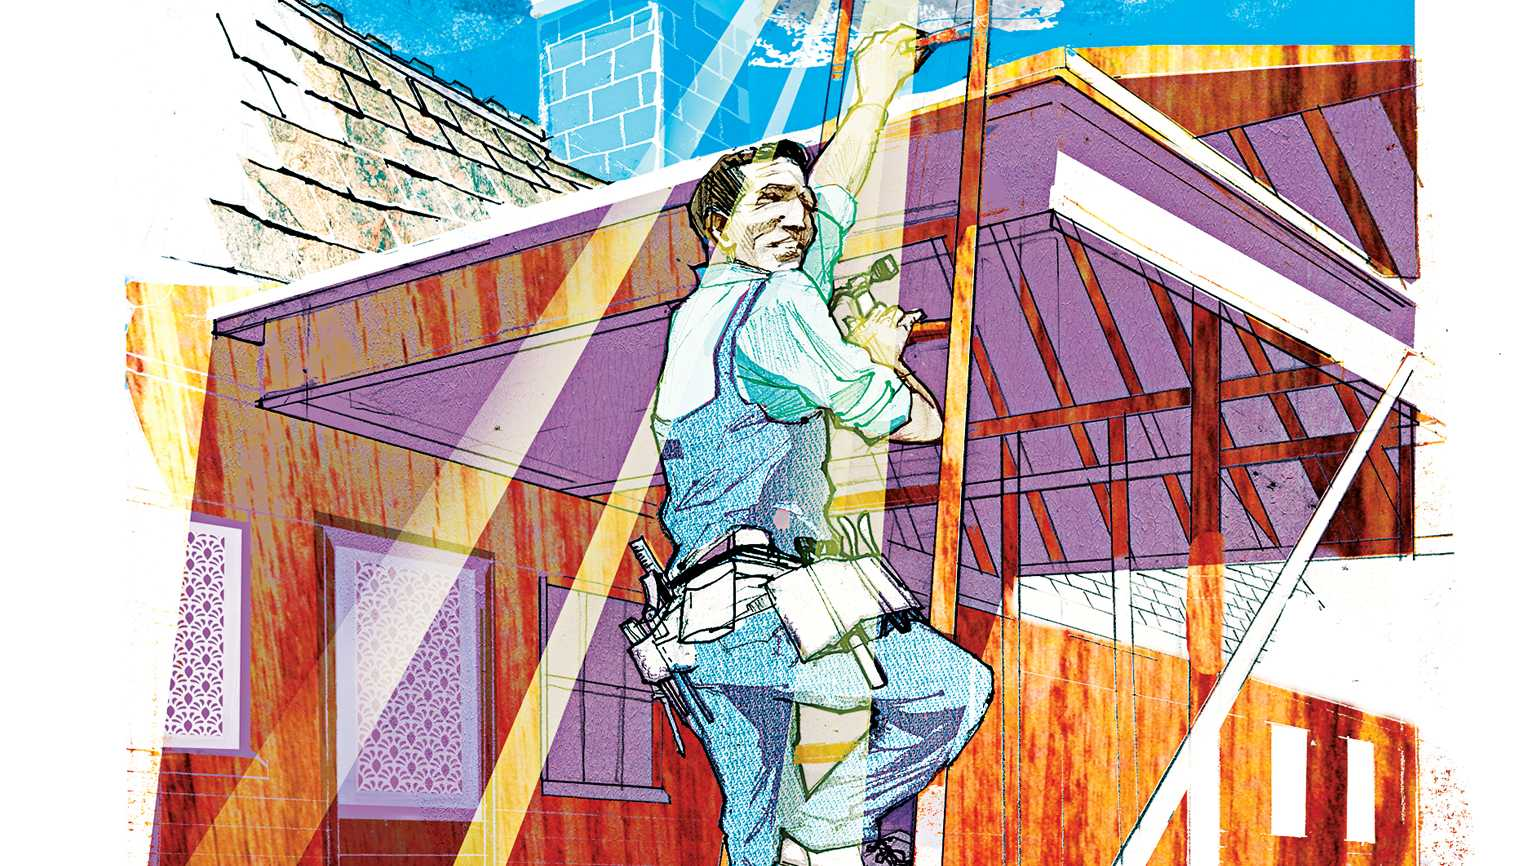 An illustration of a father climbing a ladder; Illustration by Alex Green